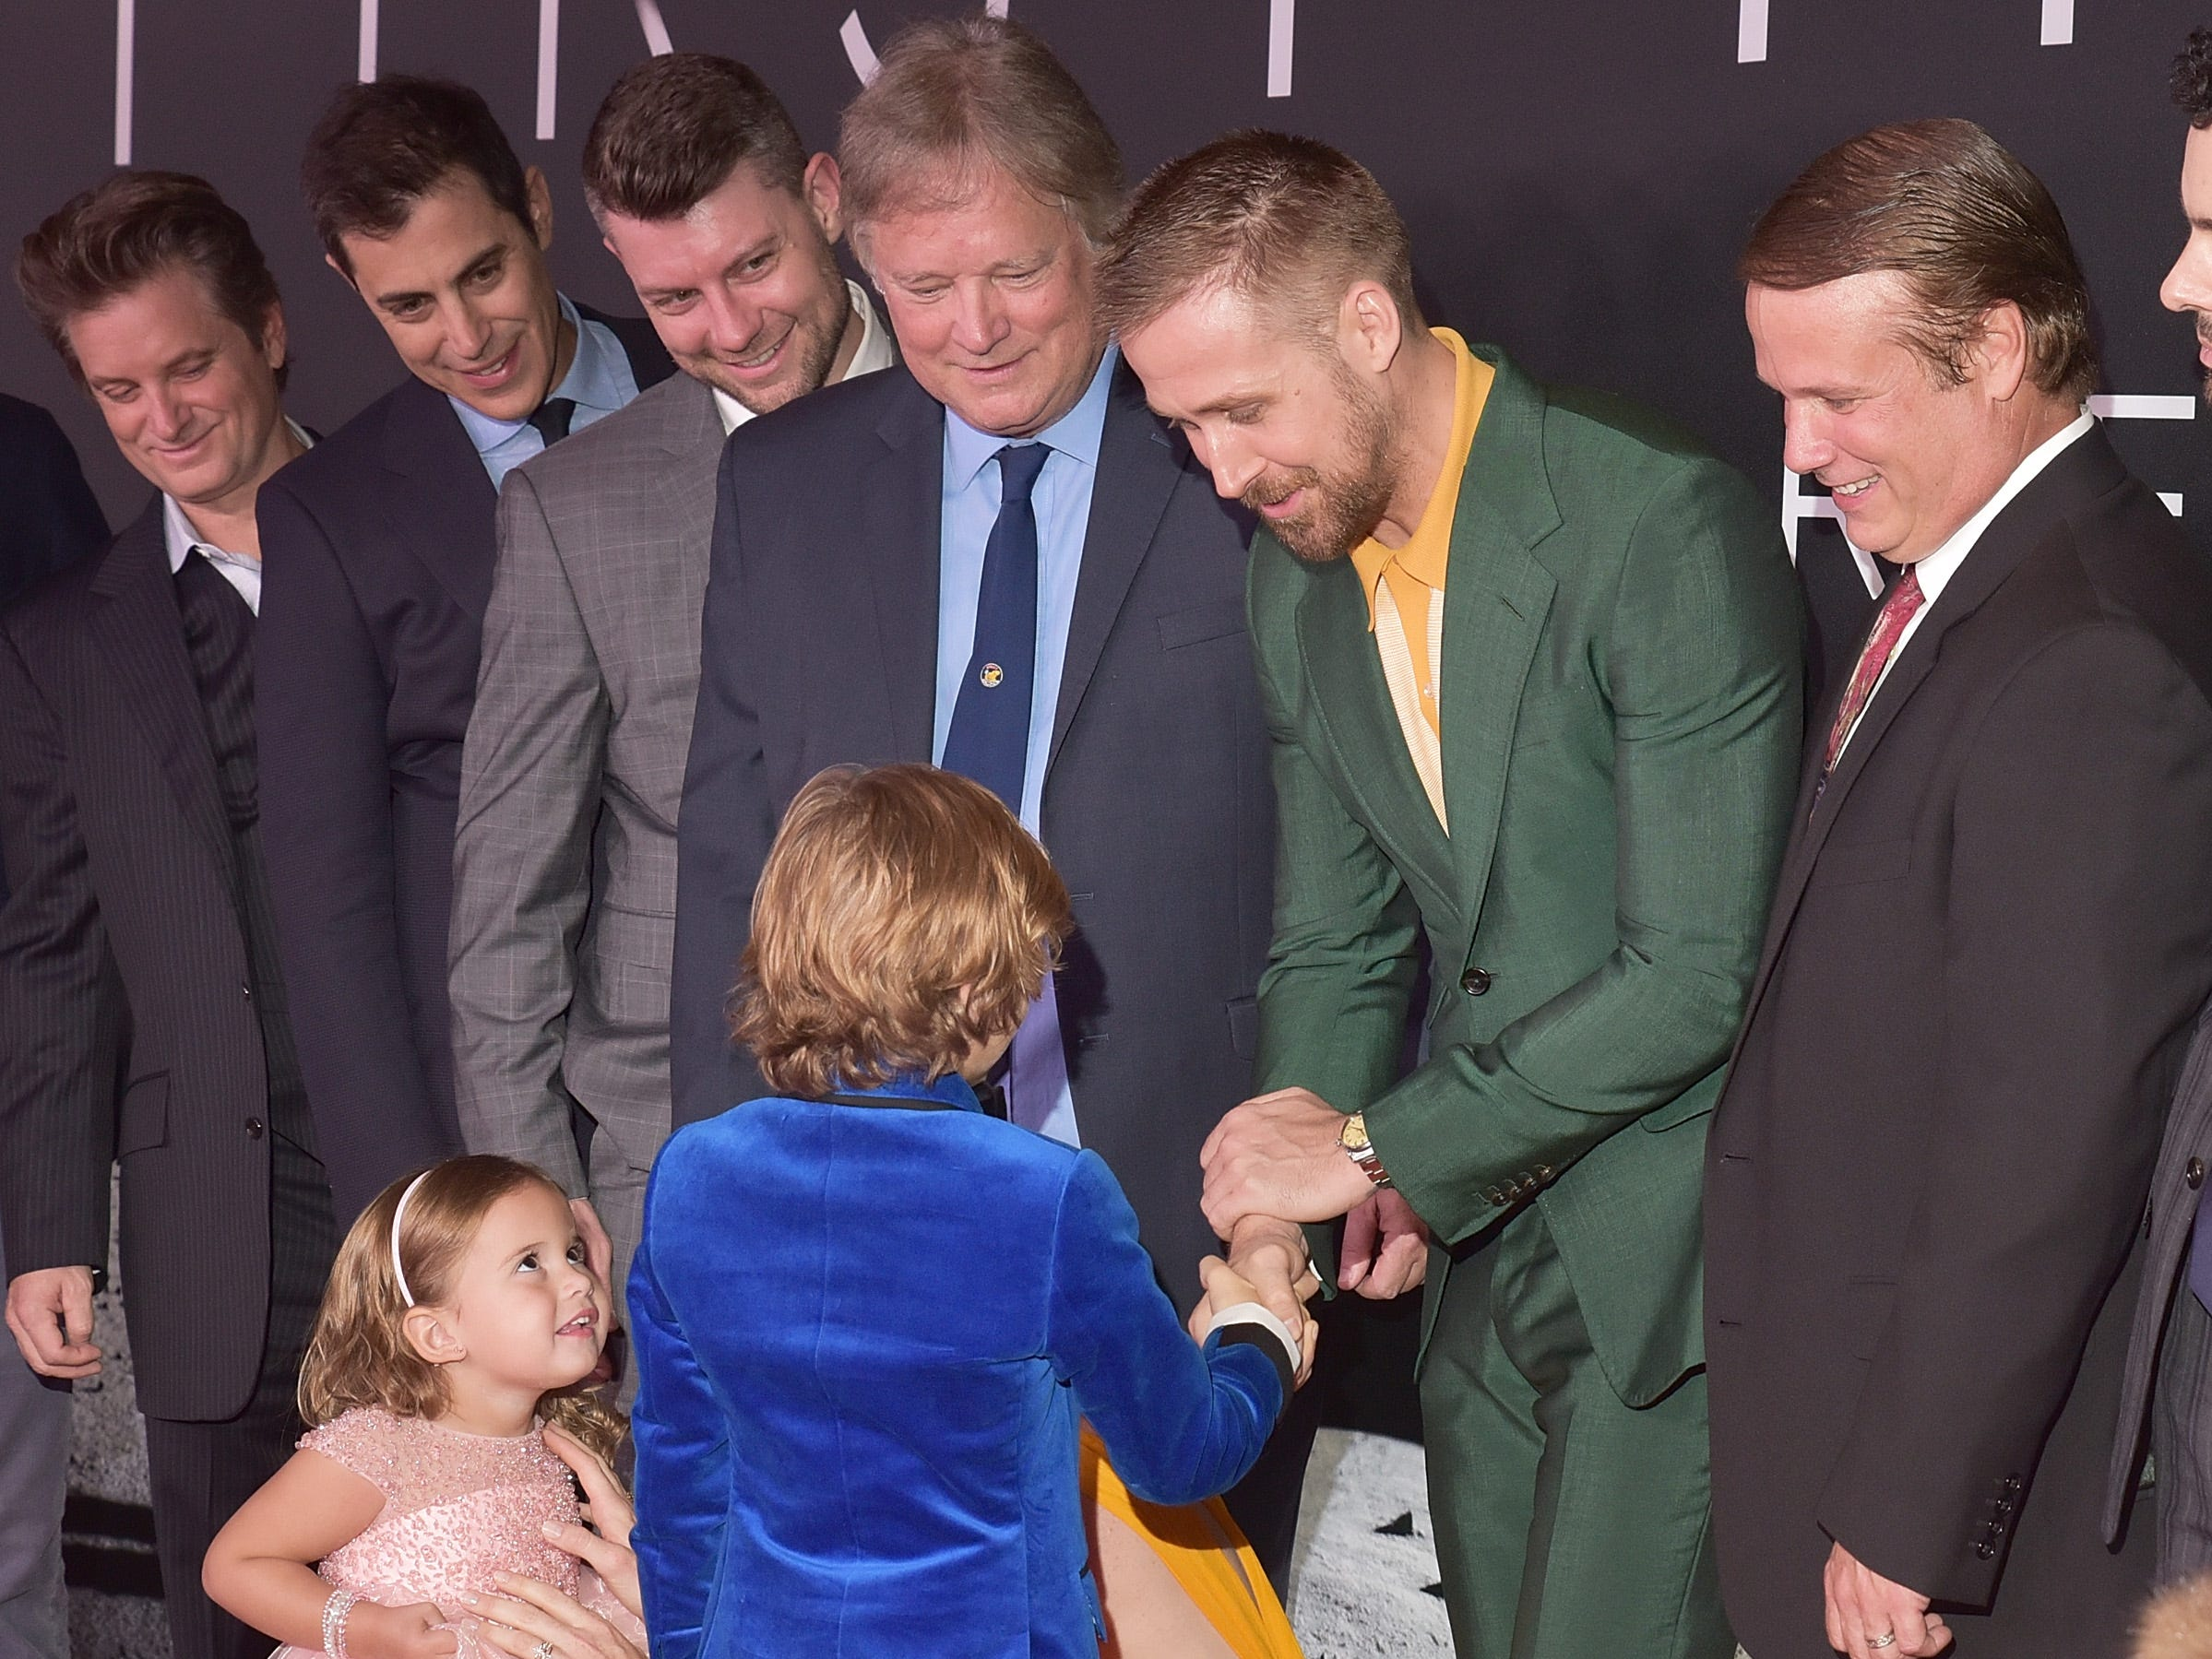 """WASHINGTON, DC - OCTOBER 04:  Actor Ryan Gosling shakes hands with child actor Gavin Warren while actor Lucy Brooke Stafford looks on at the """"First Man"""" premiere at the National Air and Space Museum on October 4, 2018 in Washington, DC.  (Photo by Shannon Finney/Getty Images) ORG XMIT: 775234726 ORIG FILE ID: 1045748526"""